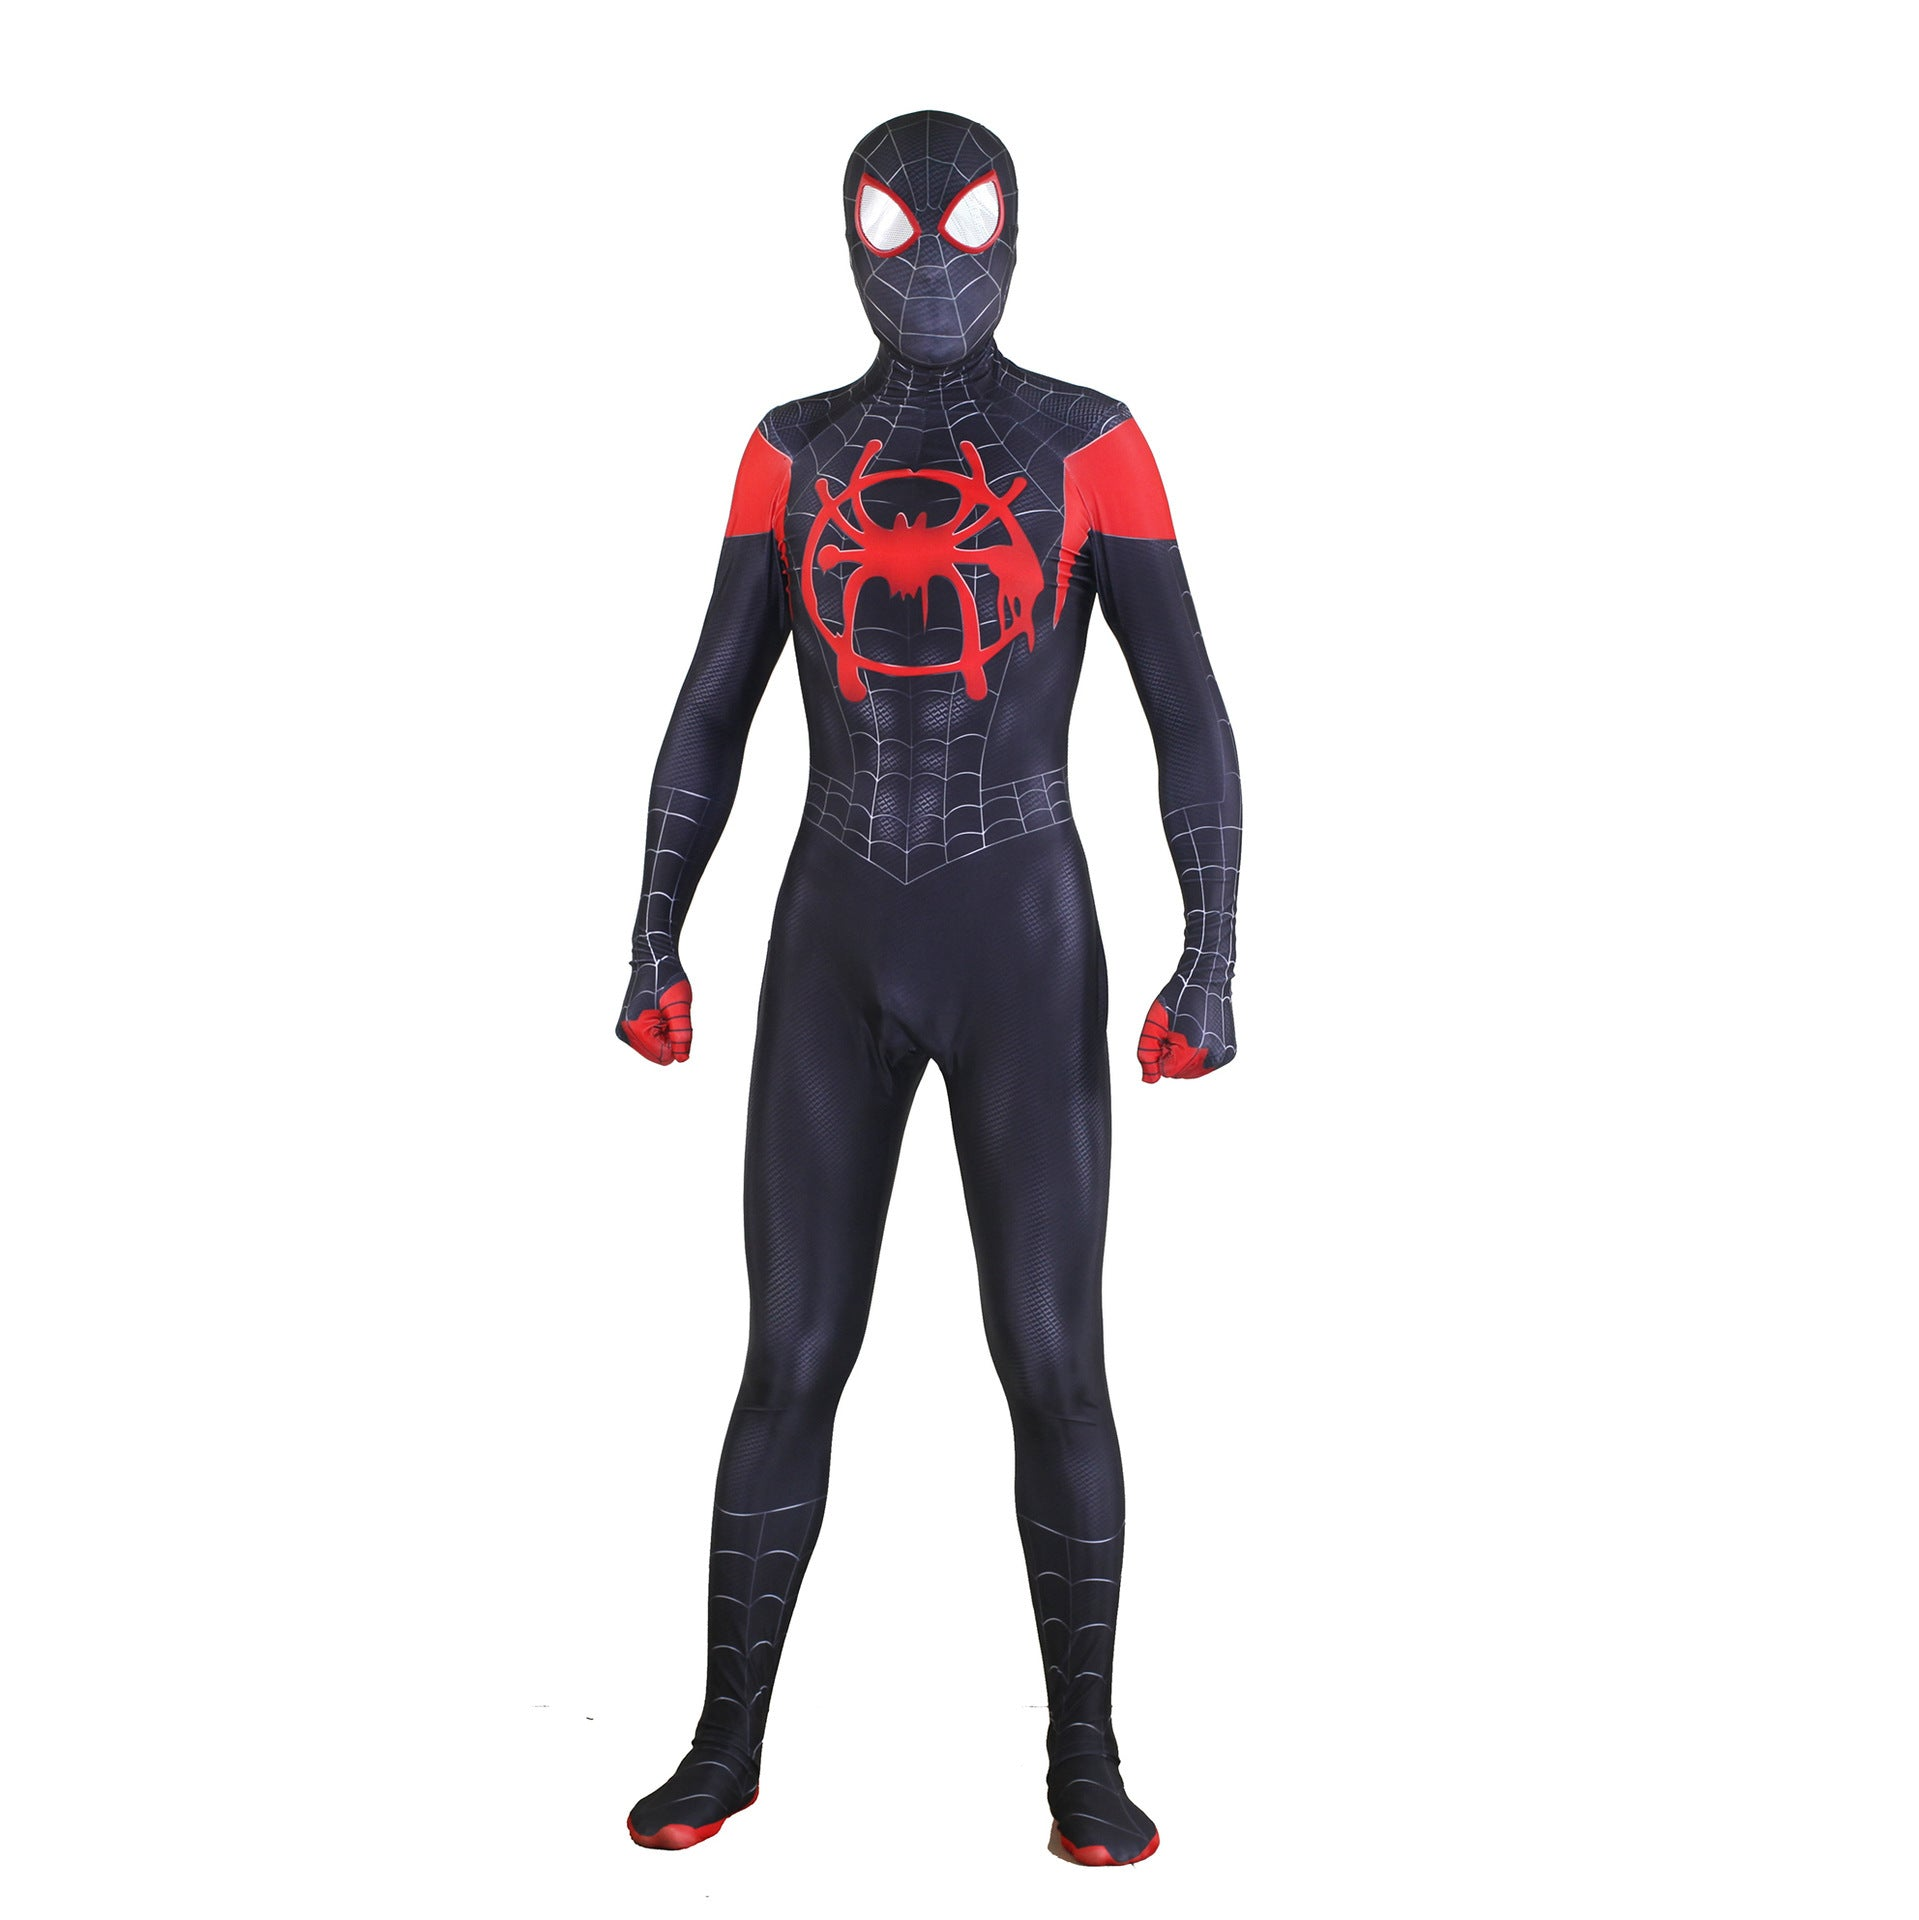 New Spider-Man Cosplay Onesies for Adults